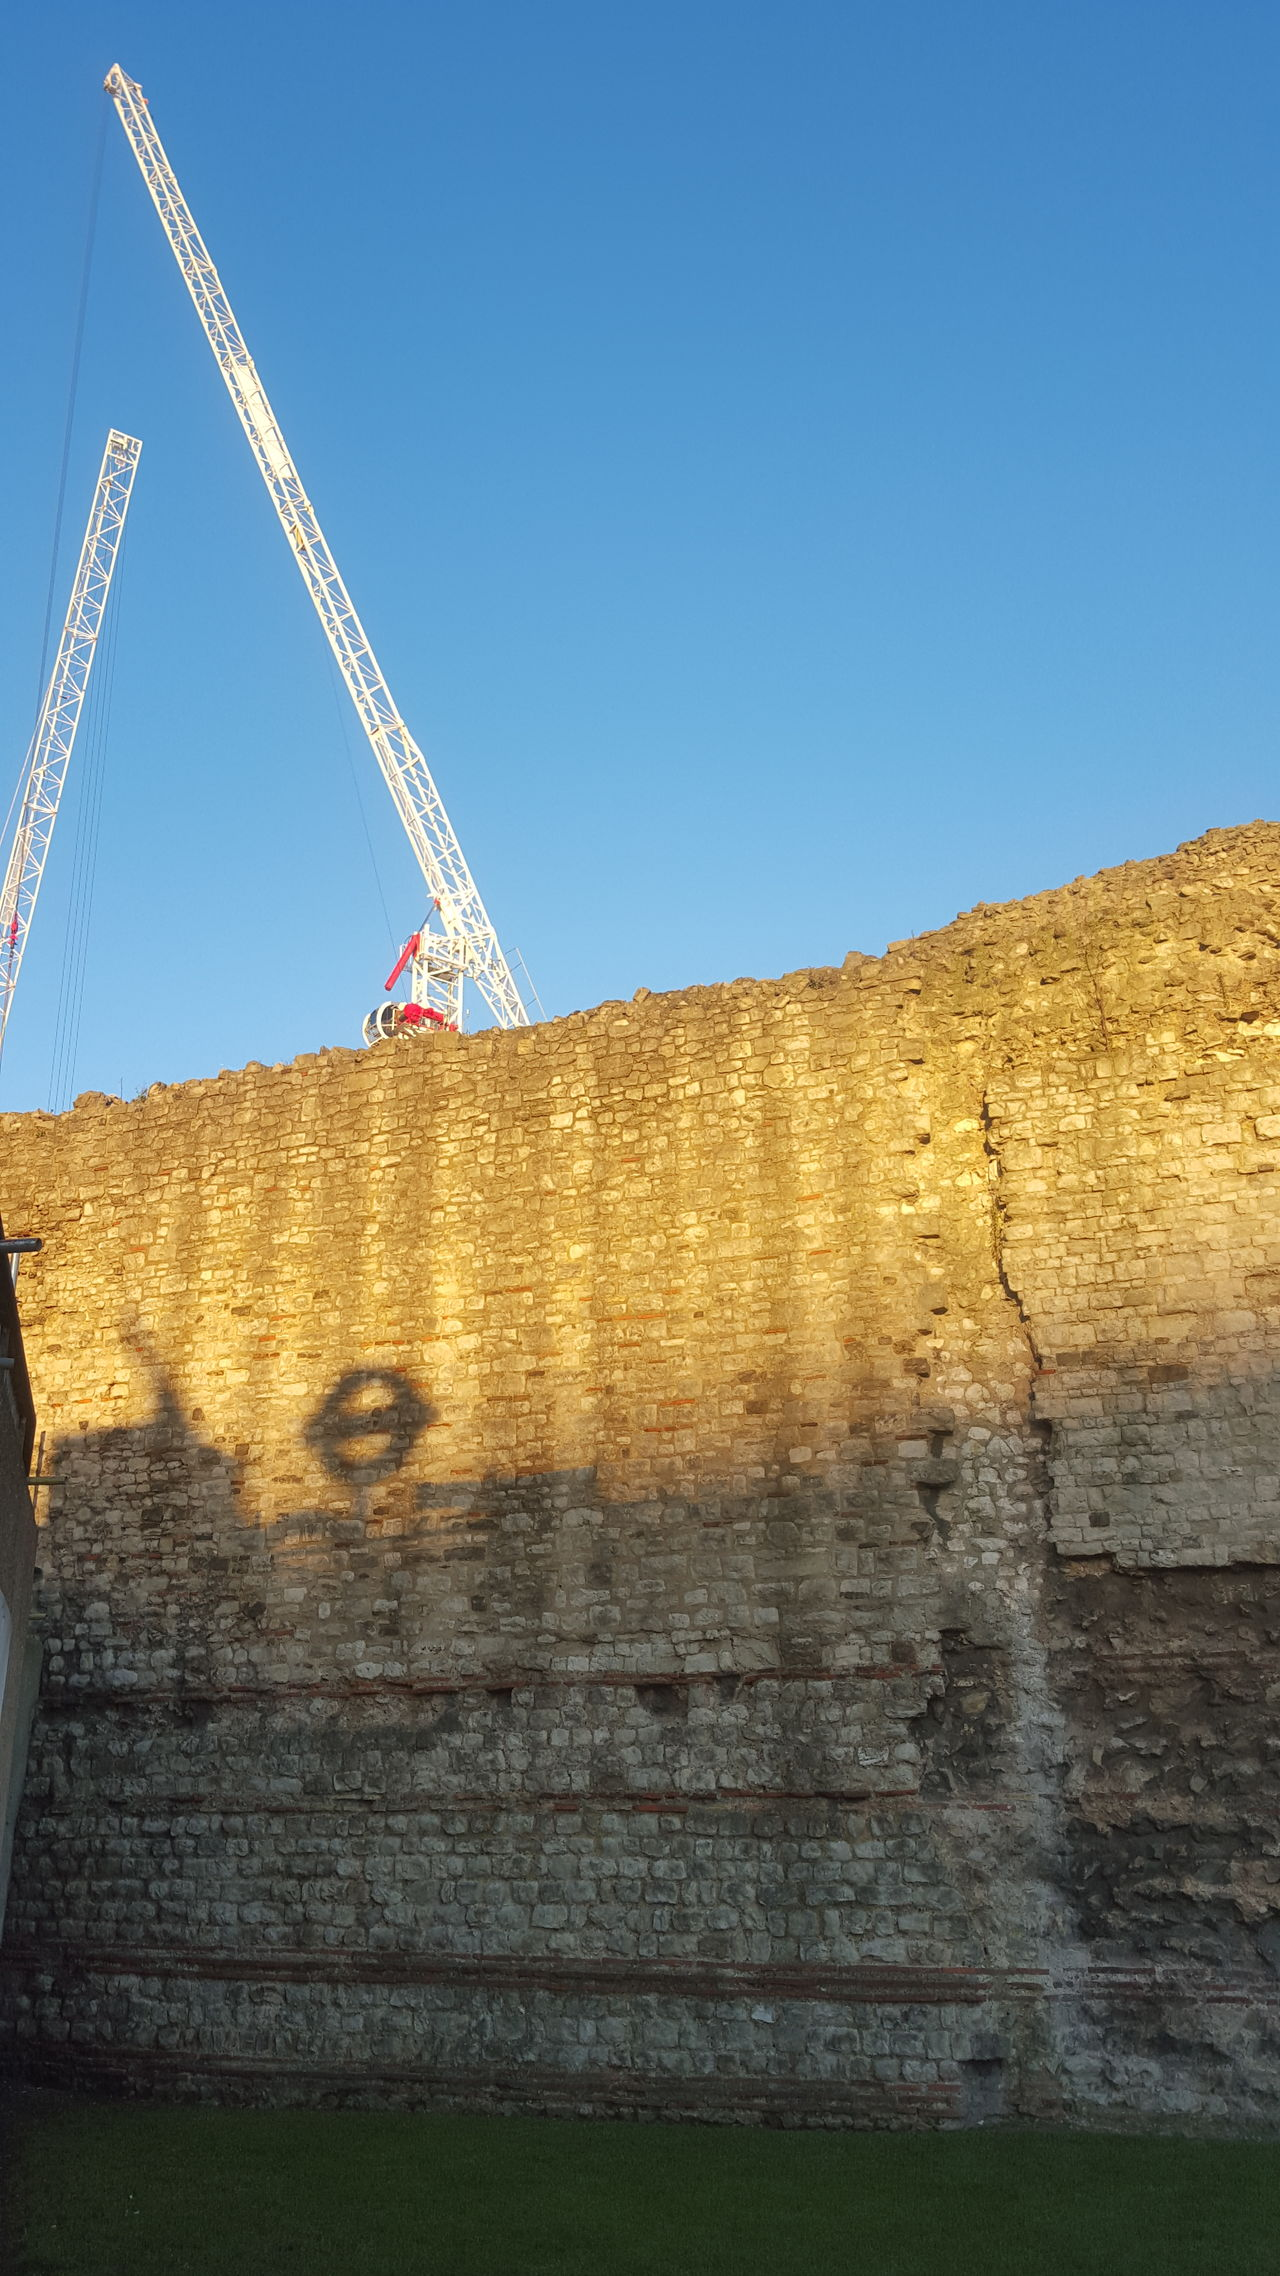 (Very) old London in front of future to be London. At Towerhill Londonwall Sunset_collection Cranes building the next gen of London's Buildings tower over the Roman and medieval wall. The shadow is the london undeground sign roundel.